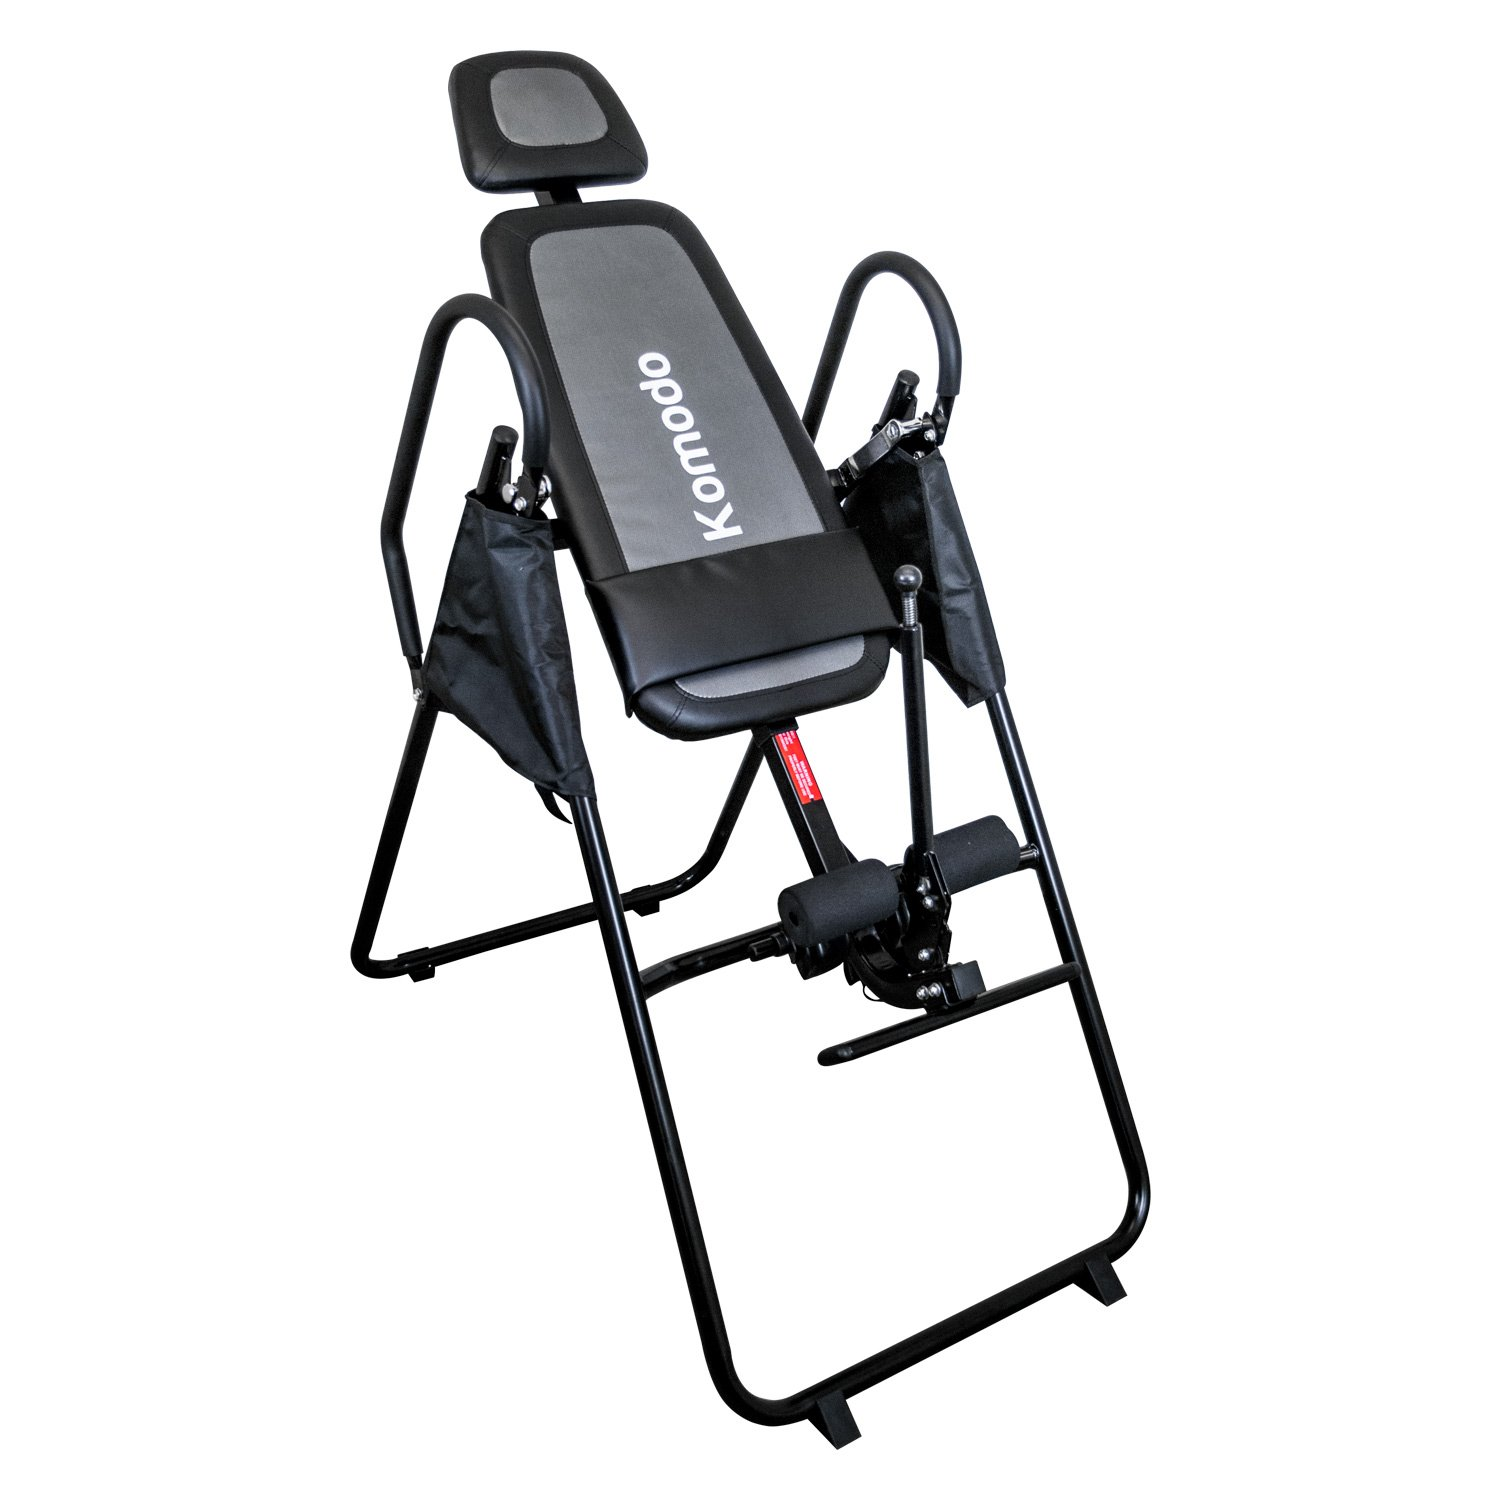 Get Fit Quick in 2018 Brand New Komodo Inversion Table